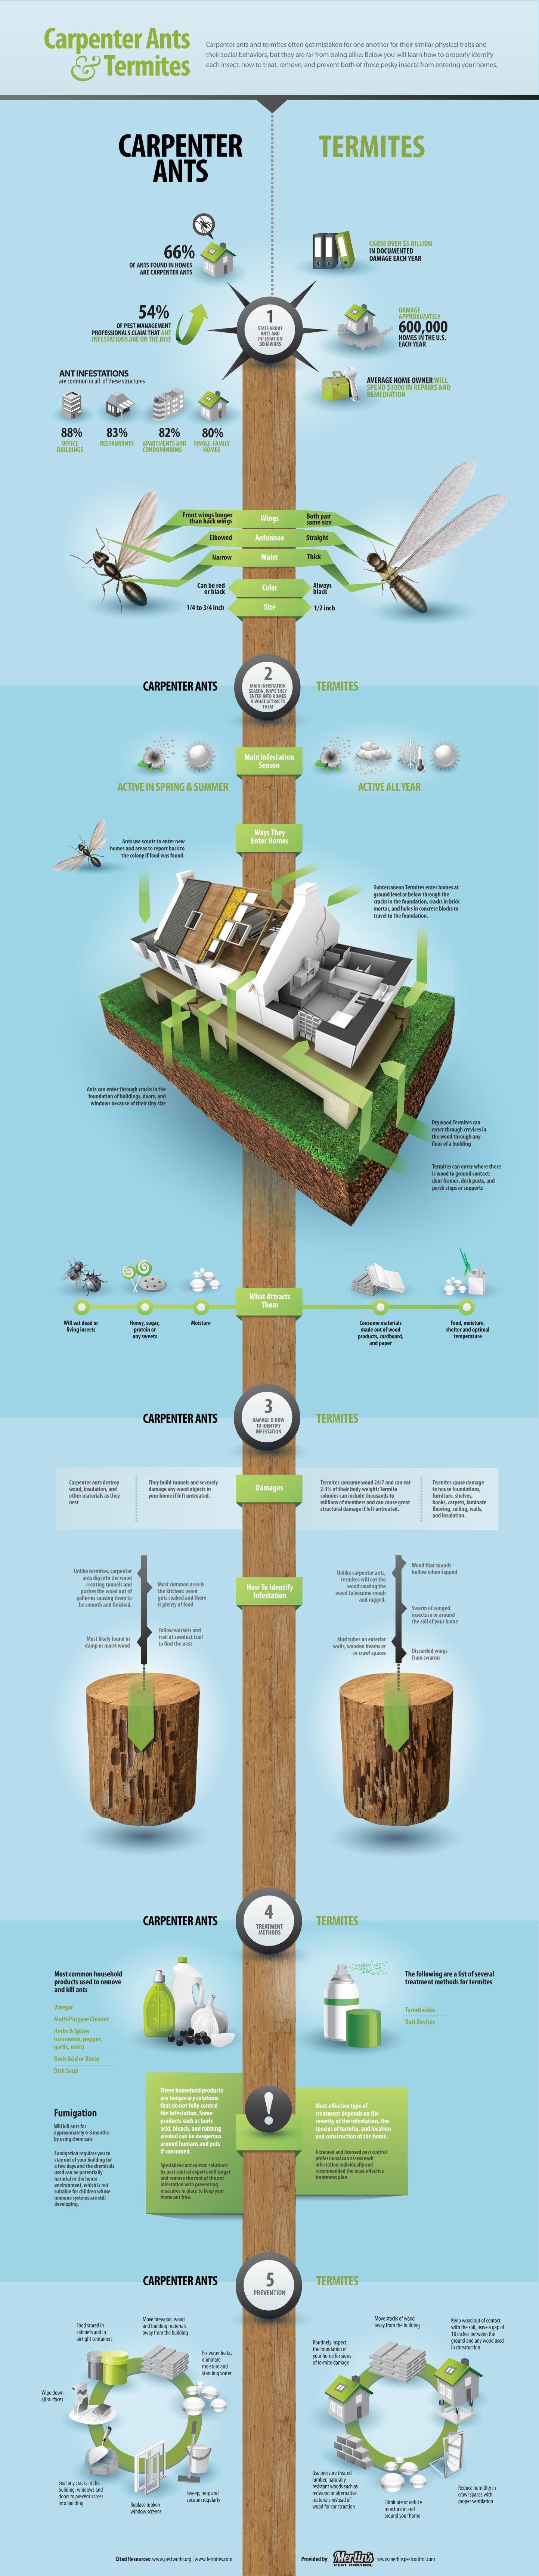 Carpenter Ants and Termites - #Infographic | Wood Destroying Insects ...